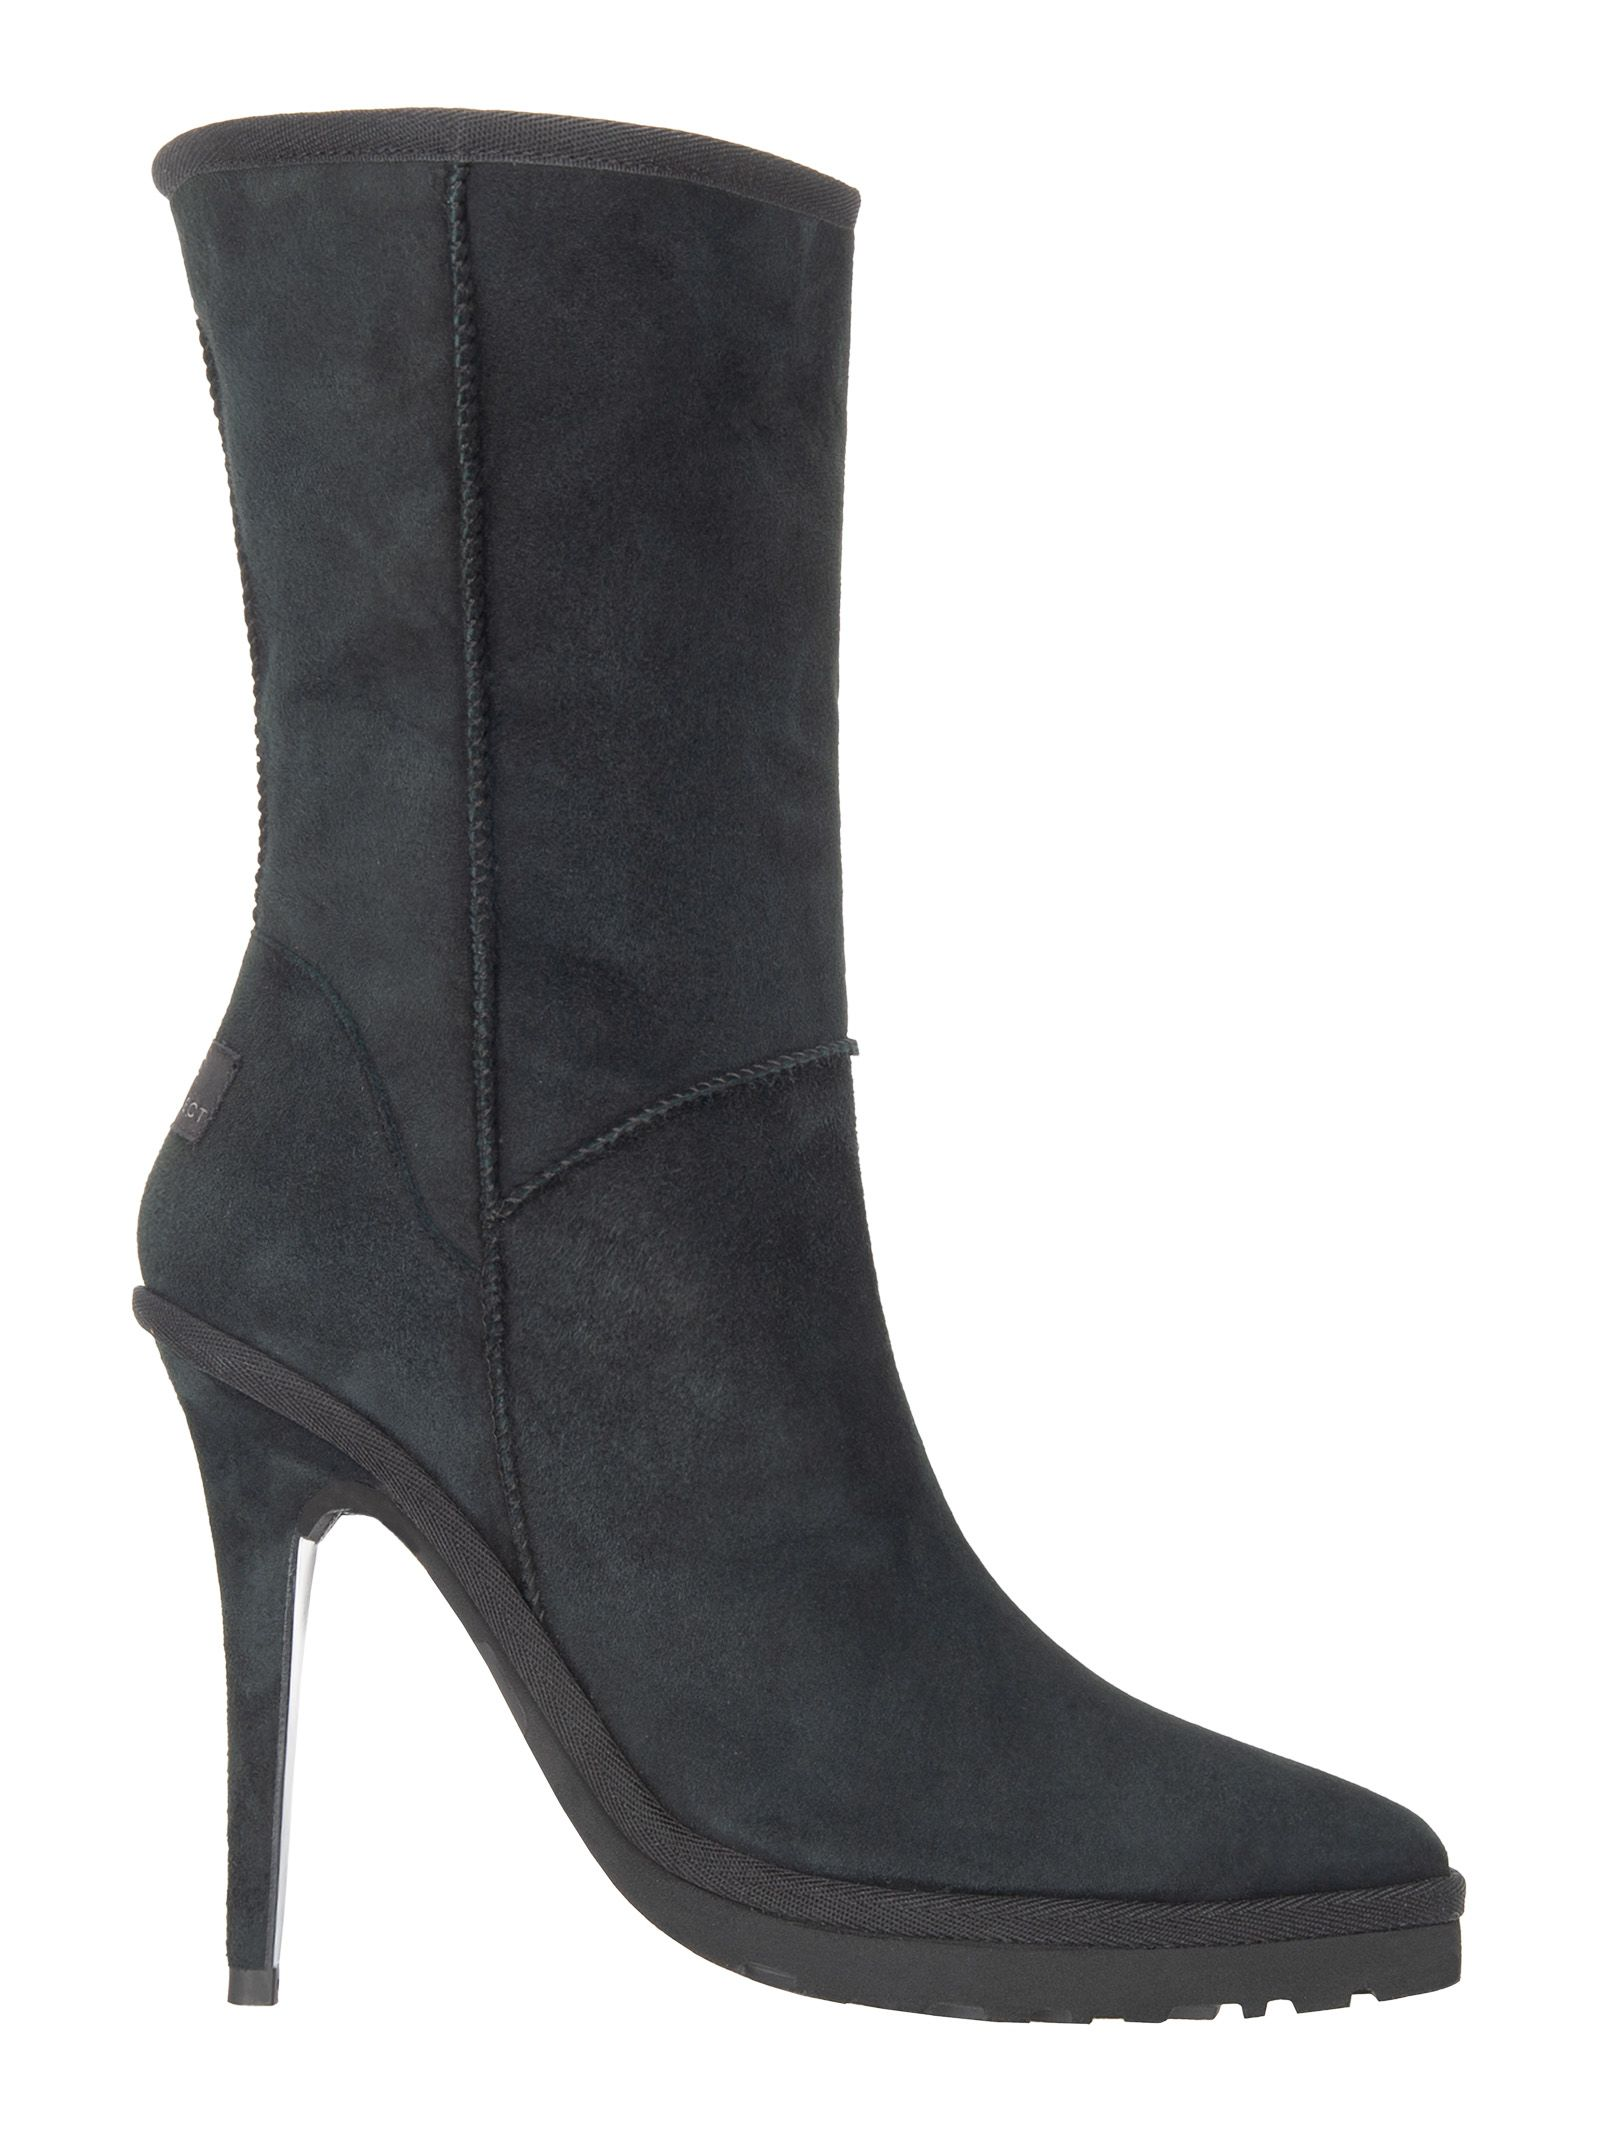 Y/project Y/PROJECT UGG ANKLE BOOT